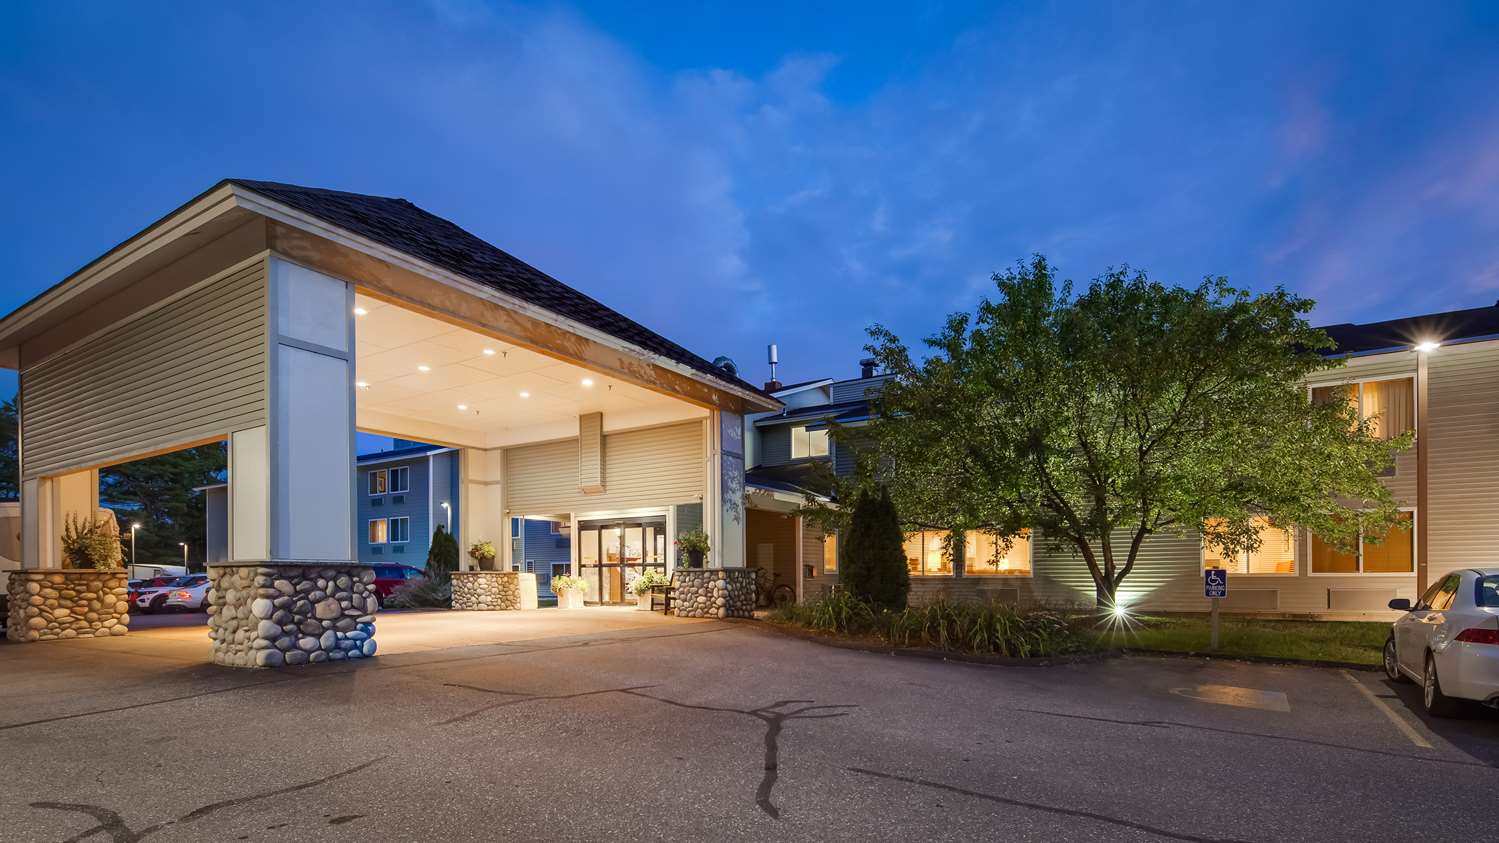 Best Western Plus Windjammer Inn South Burlington